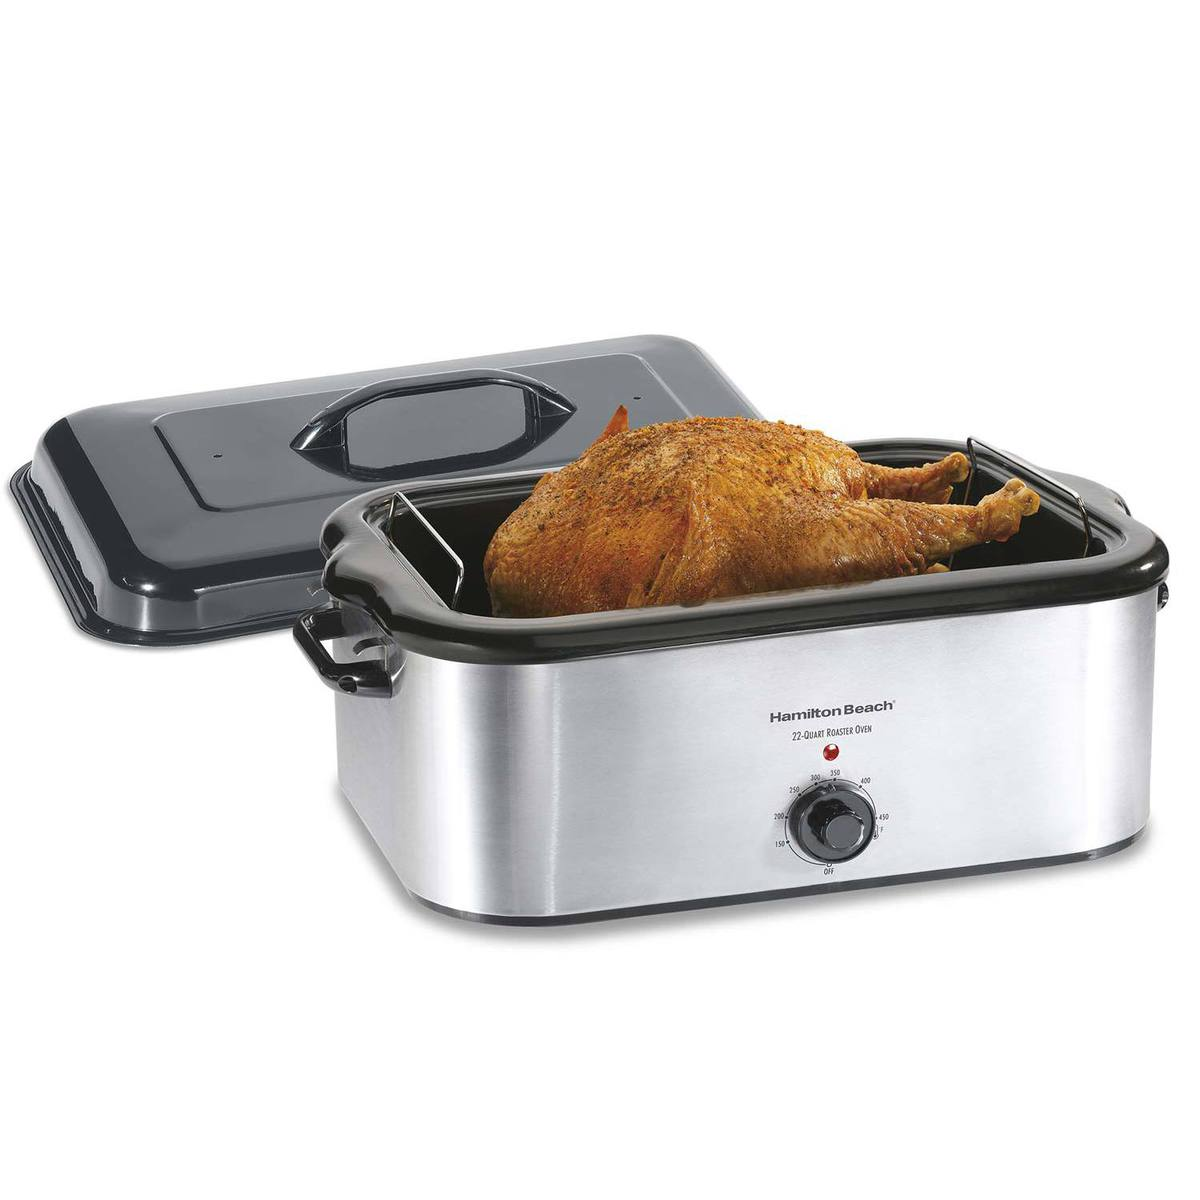 Stainless Steel 22 Quart Roaster Oven (32229)